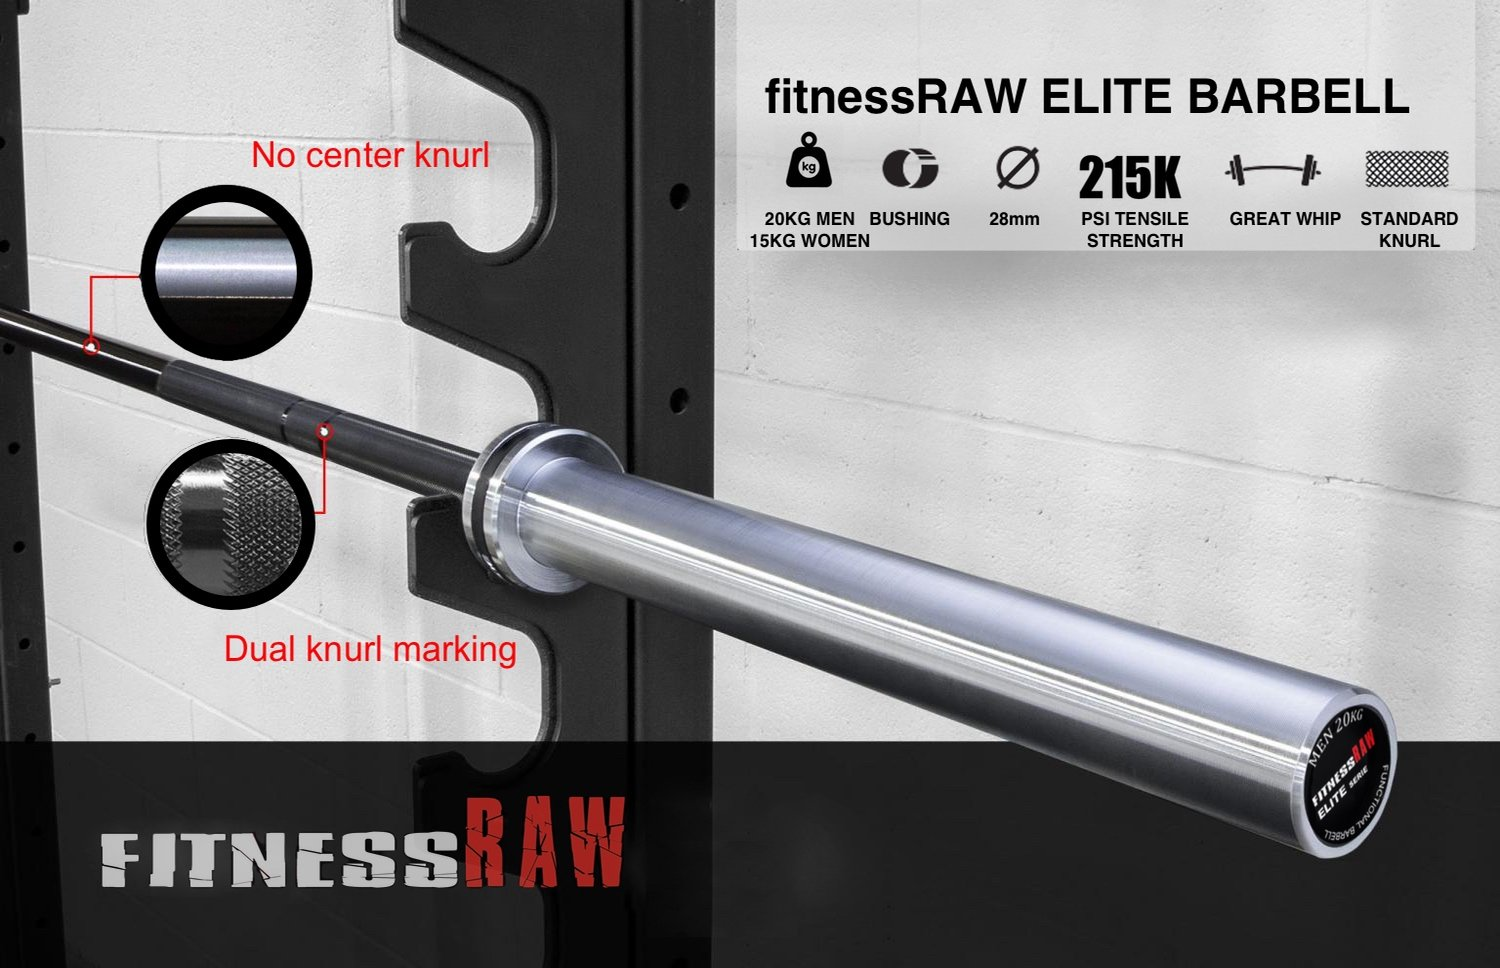 FitnessRAW Elite Olympic Barbell for Crossfit, wheightlifting and benchpress. 20kg, Men